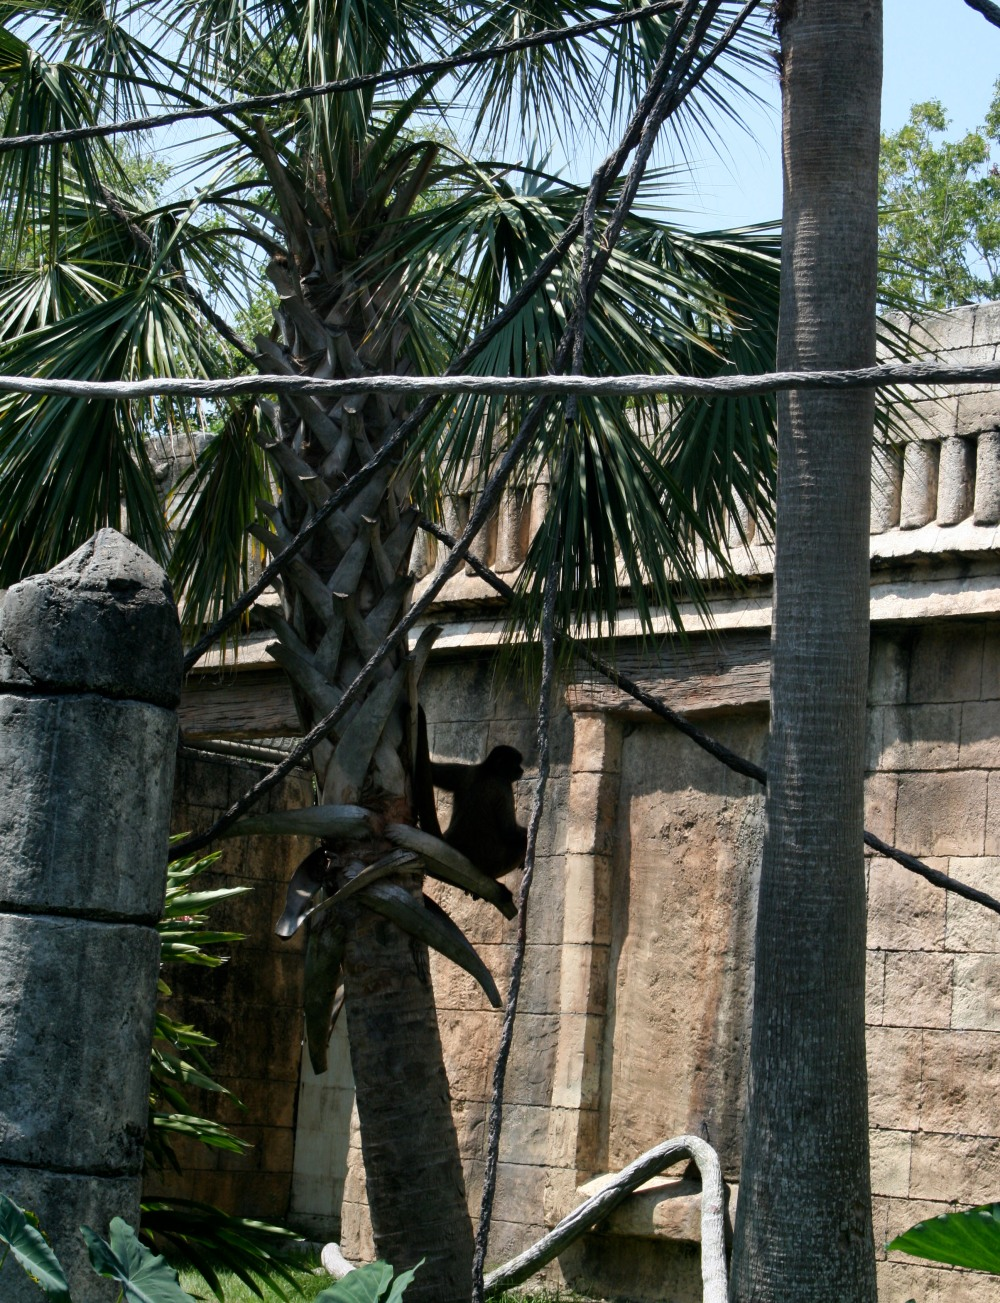 spider monkey, so ponderous